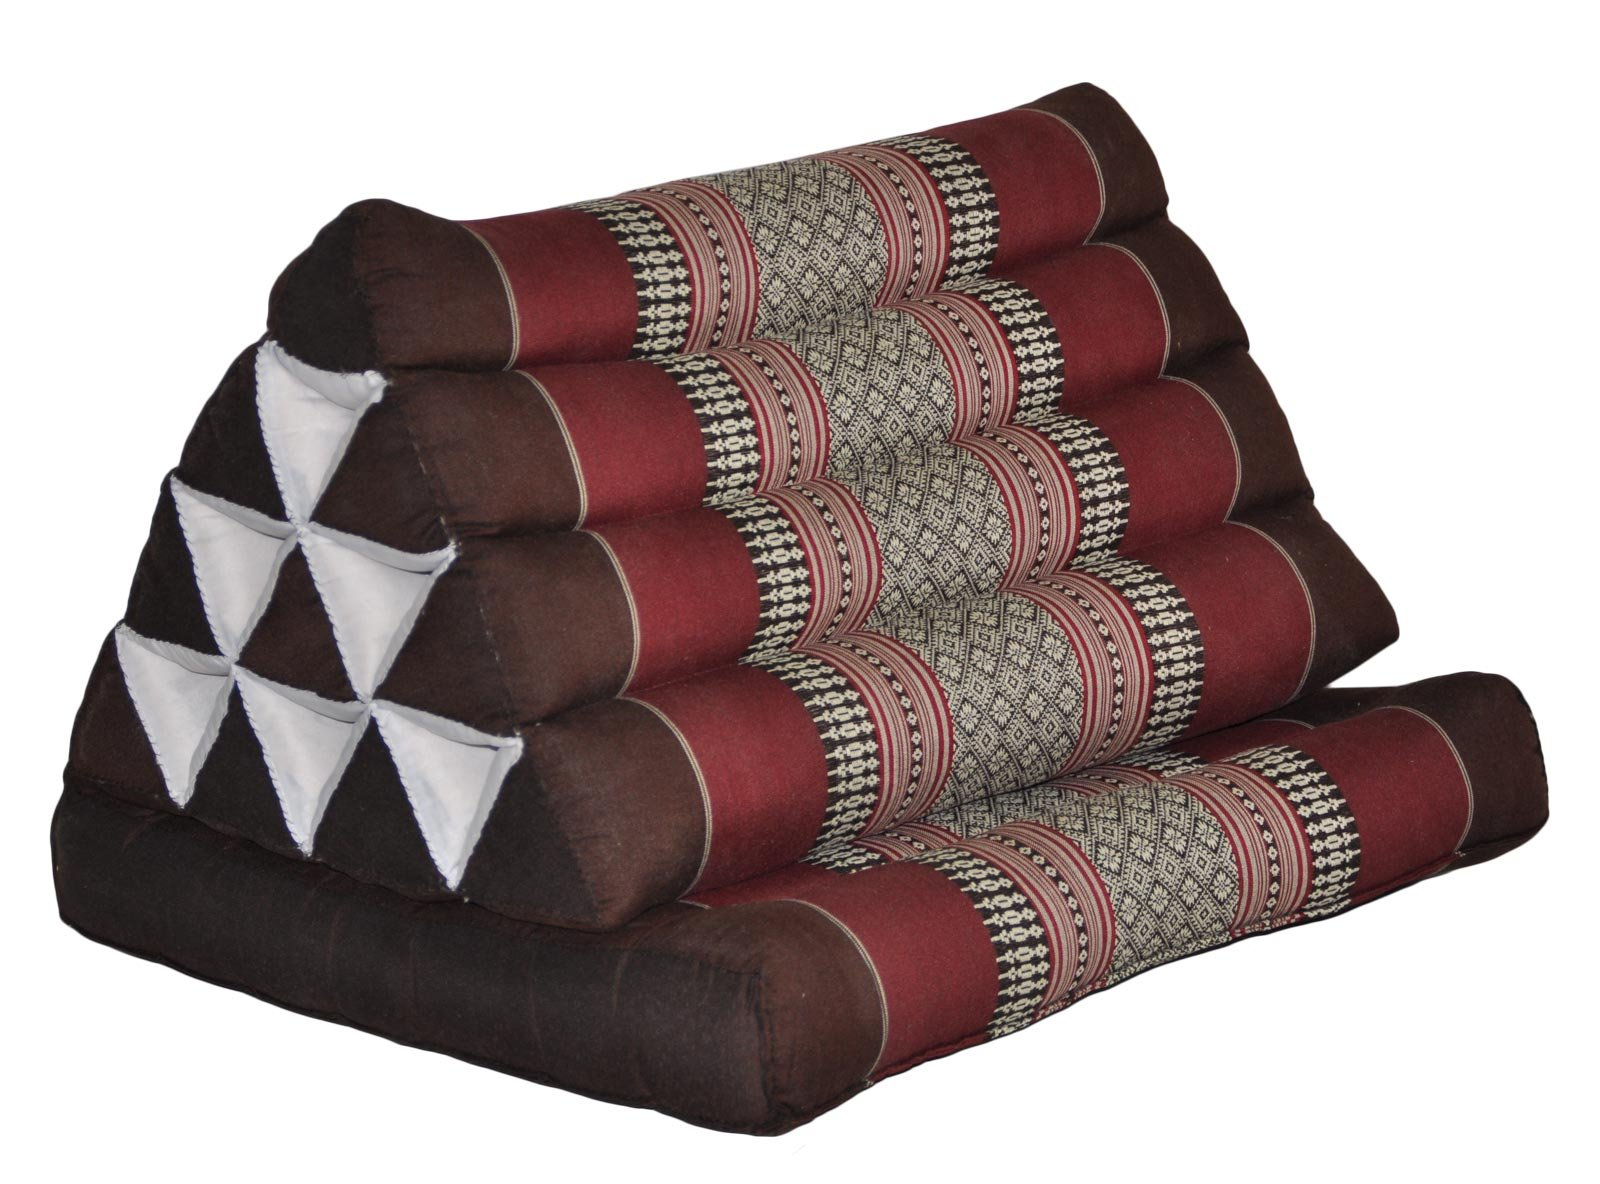 Thai triangle cushion with 1 folding seat, brown/burgundy, relaxation, beach, pool, meditation, yoga, (82501) by Wilai GmbH